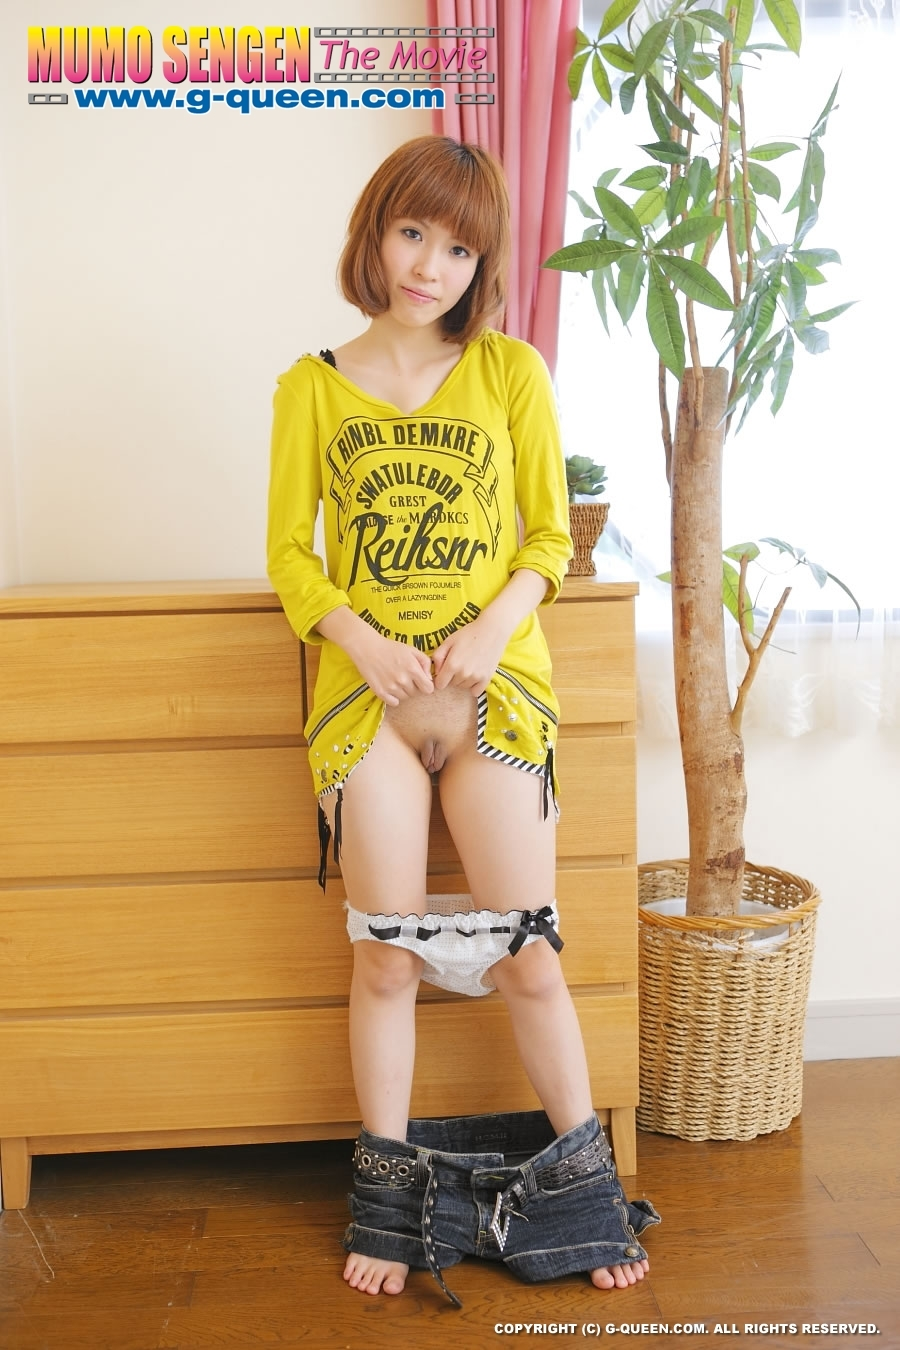 Her off japanese girl taking clothes